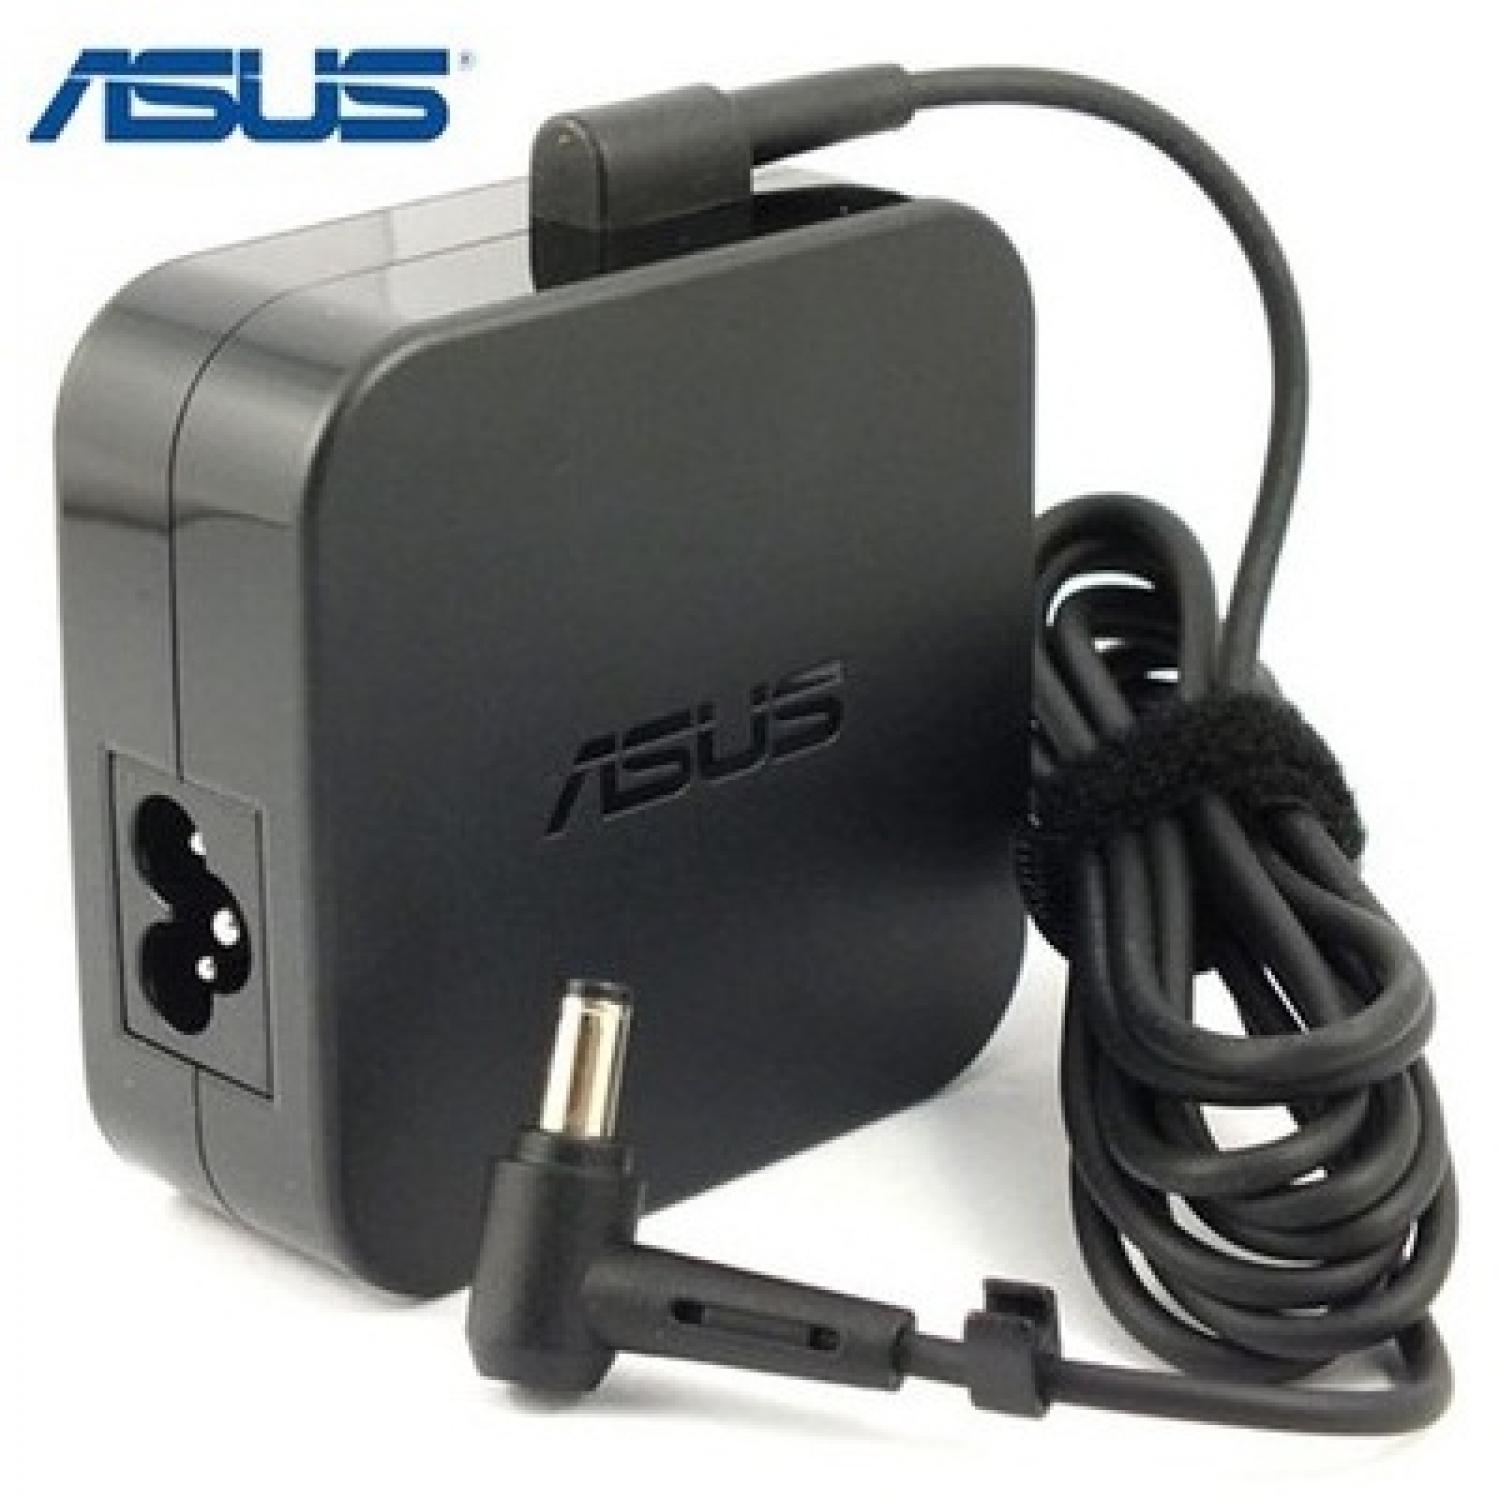 Adaptor ASUS 19V 3.42A Square Shape Pin Central